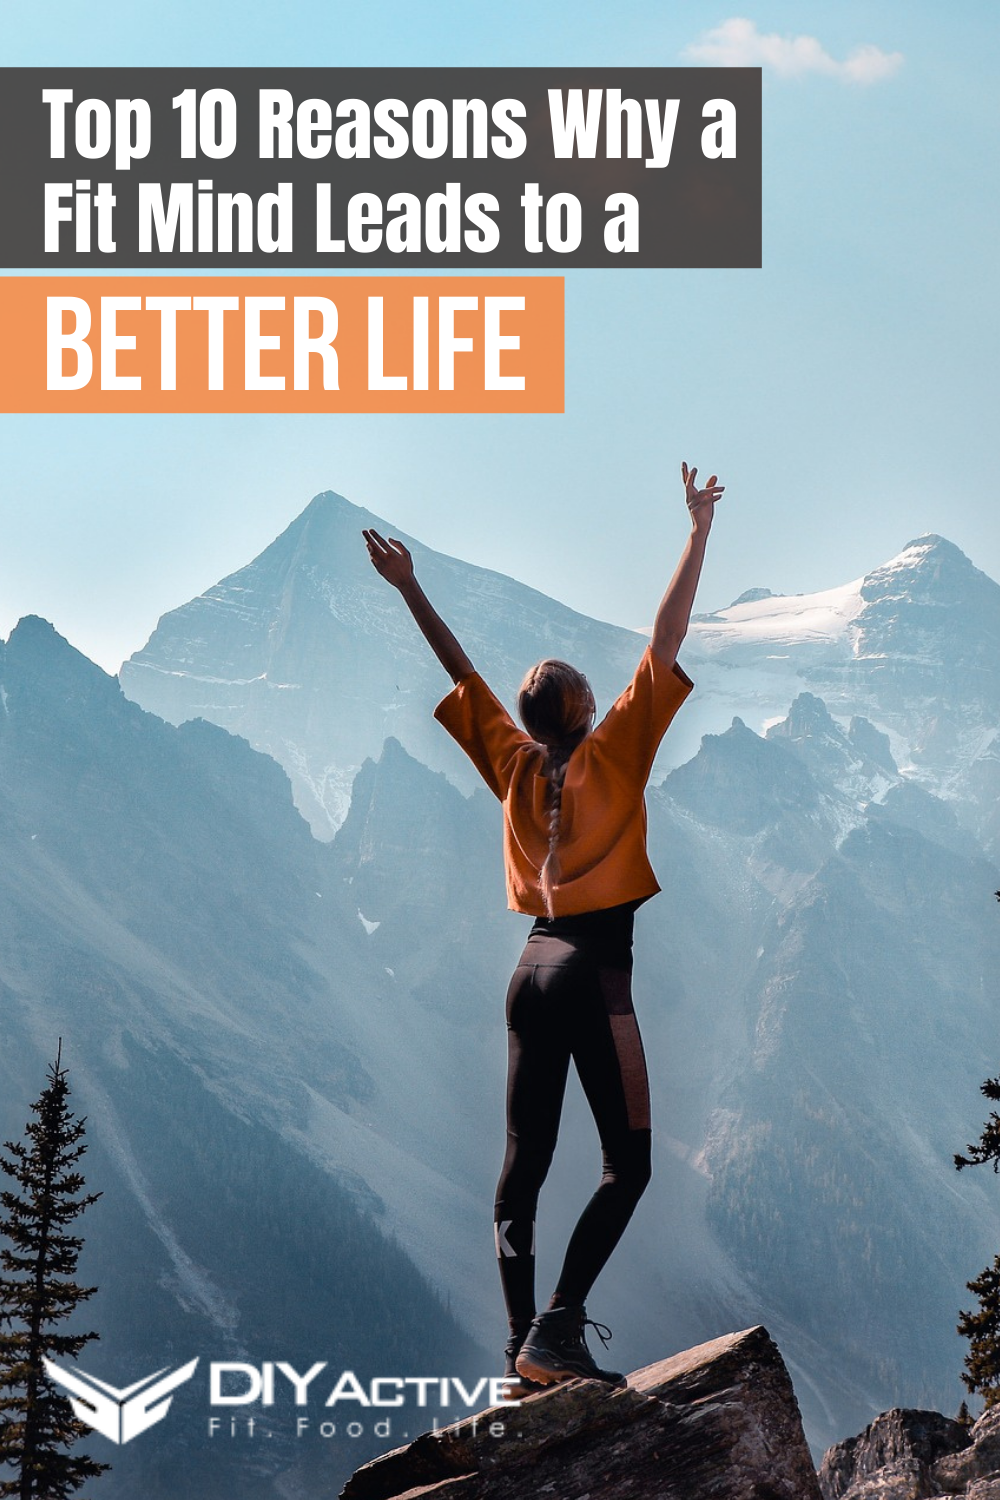 Top 10 Reasons Why a Fit Mind Leads to a Better Life